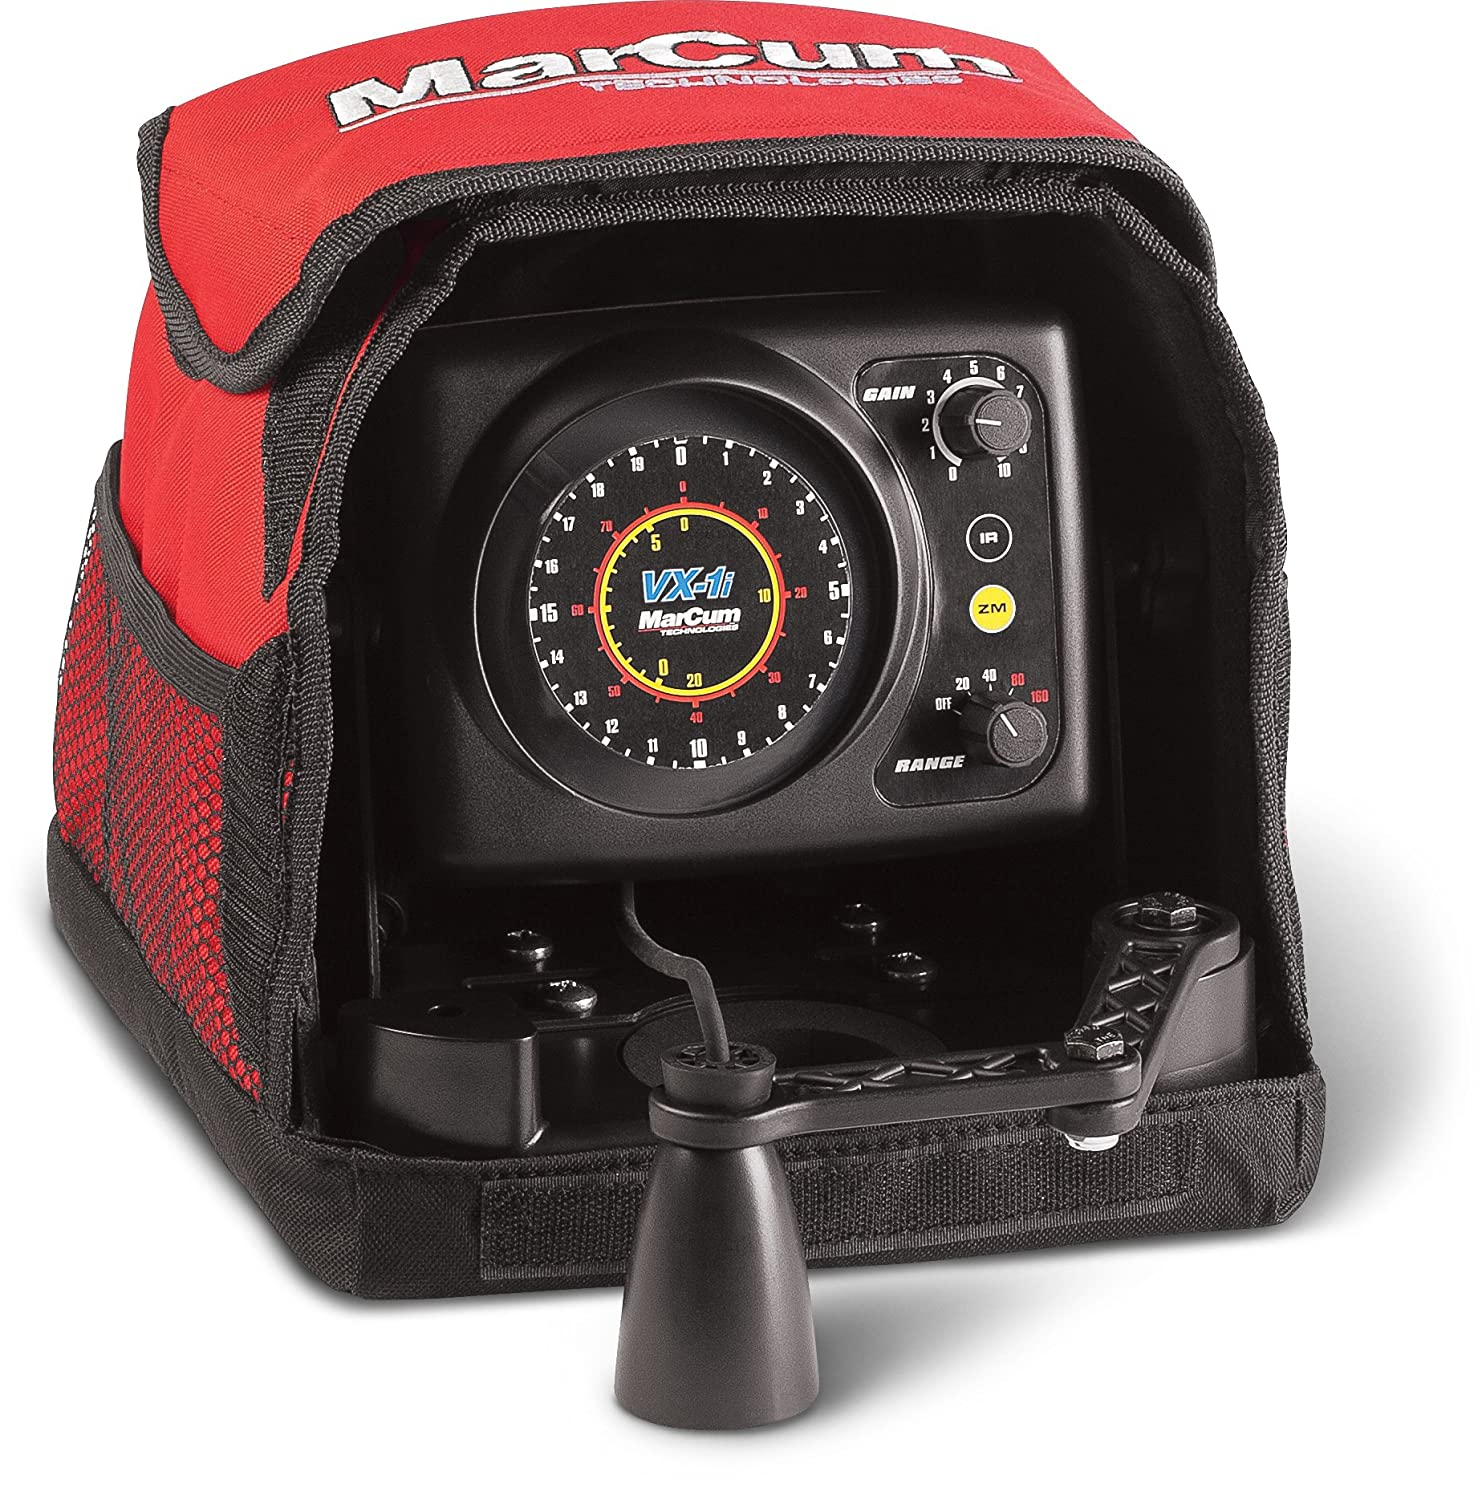 Marcum VX-1i Sonar Flasher System, Red/Black